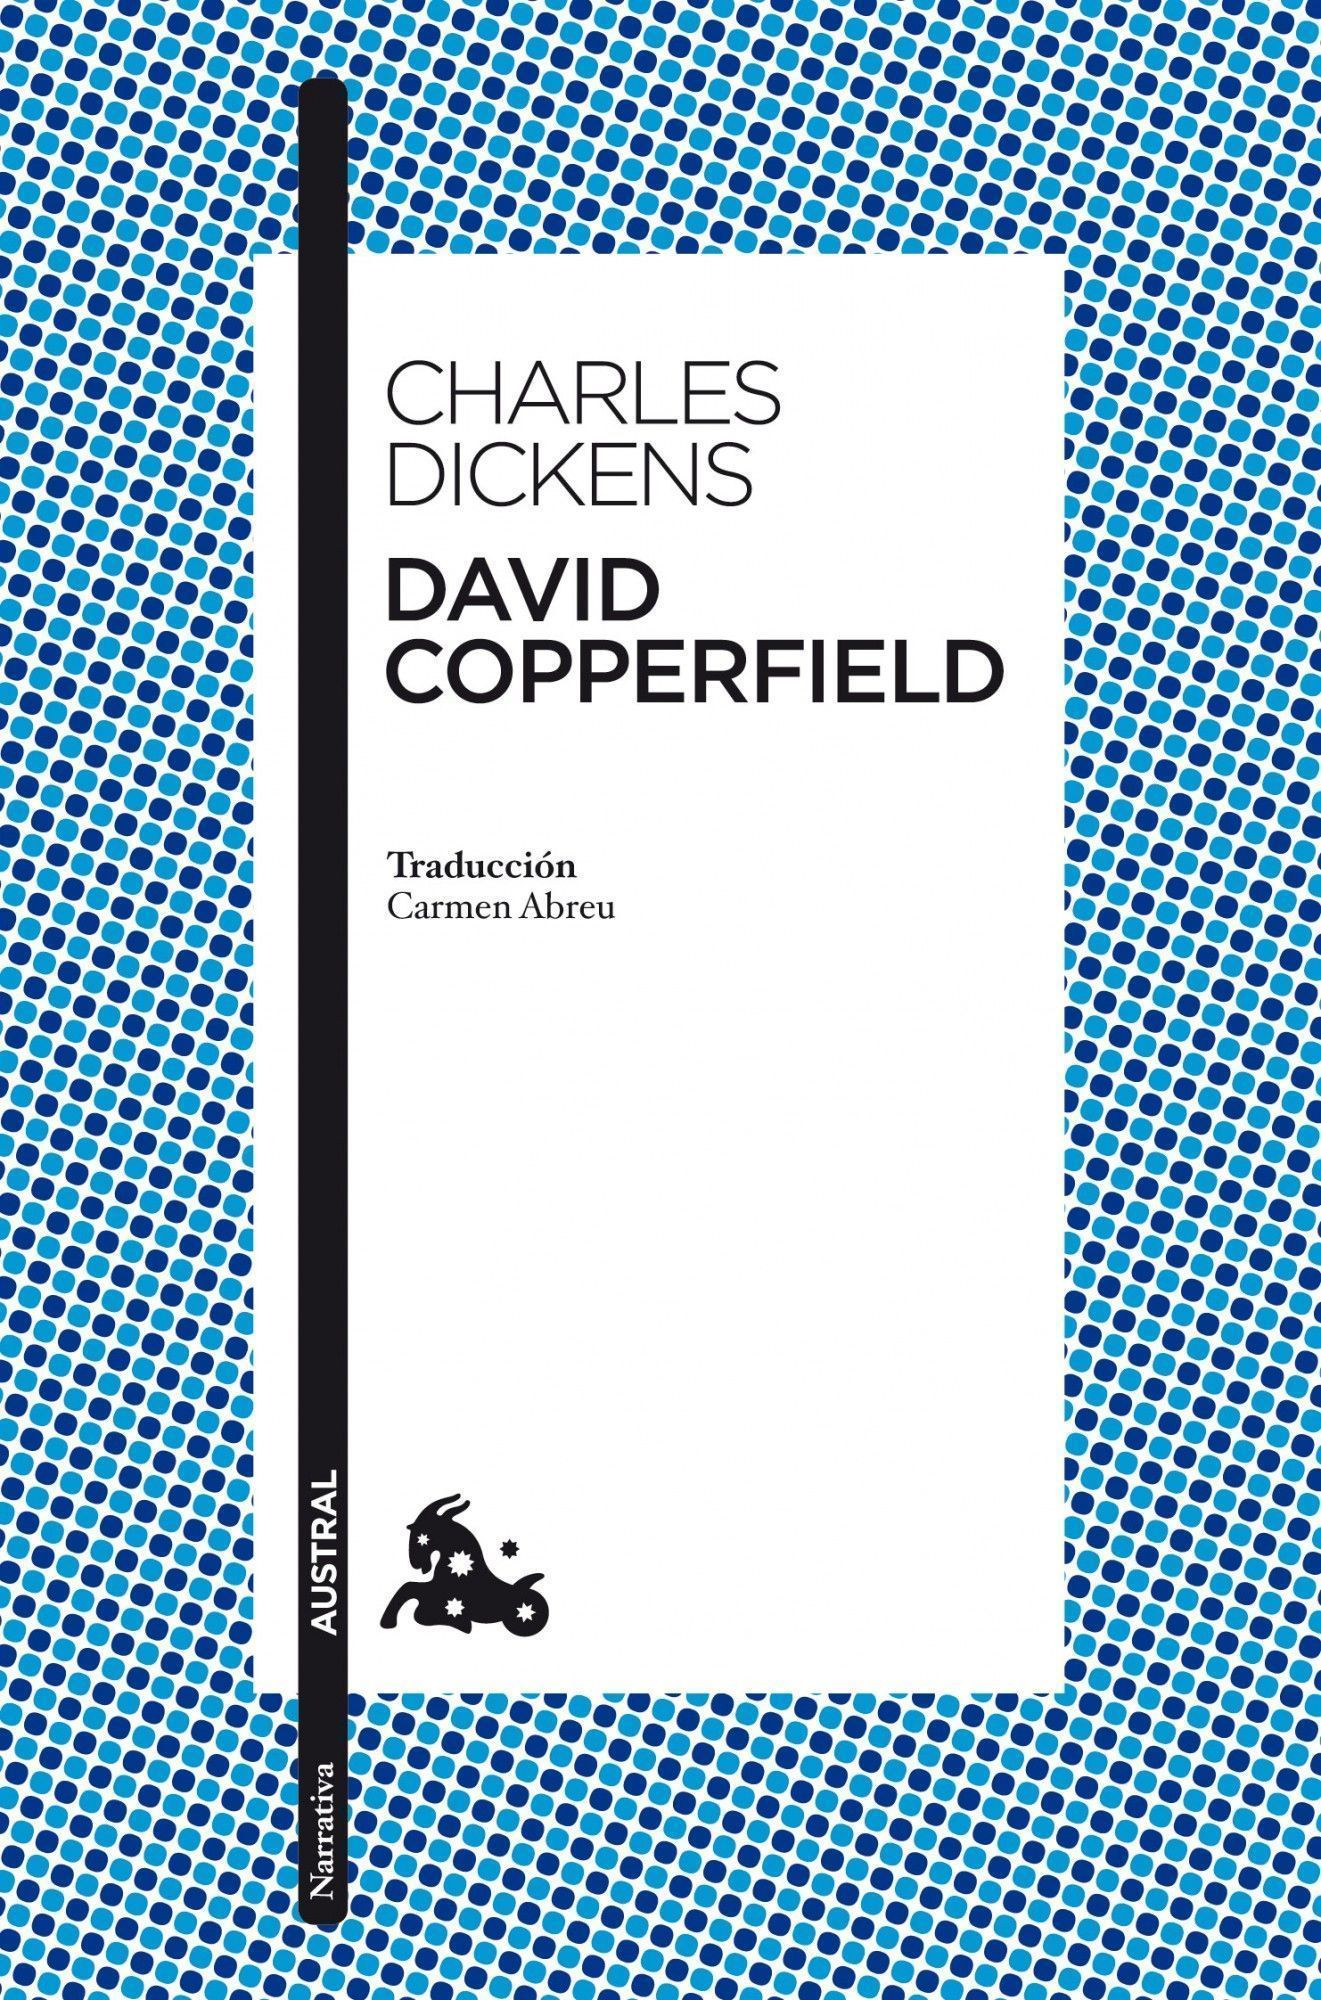 David Copperfield Libro David Copperfield Planeta De Libros